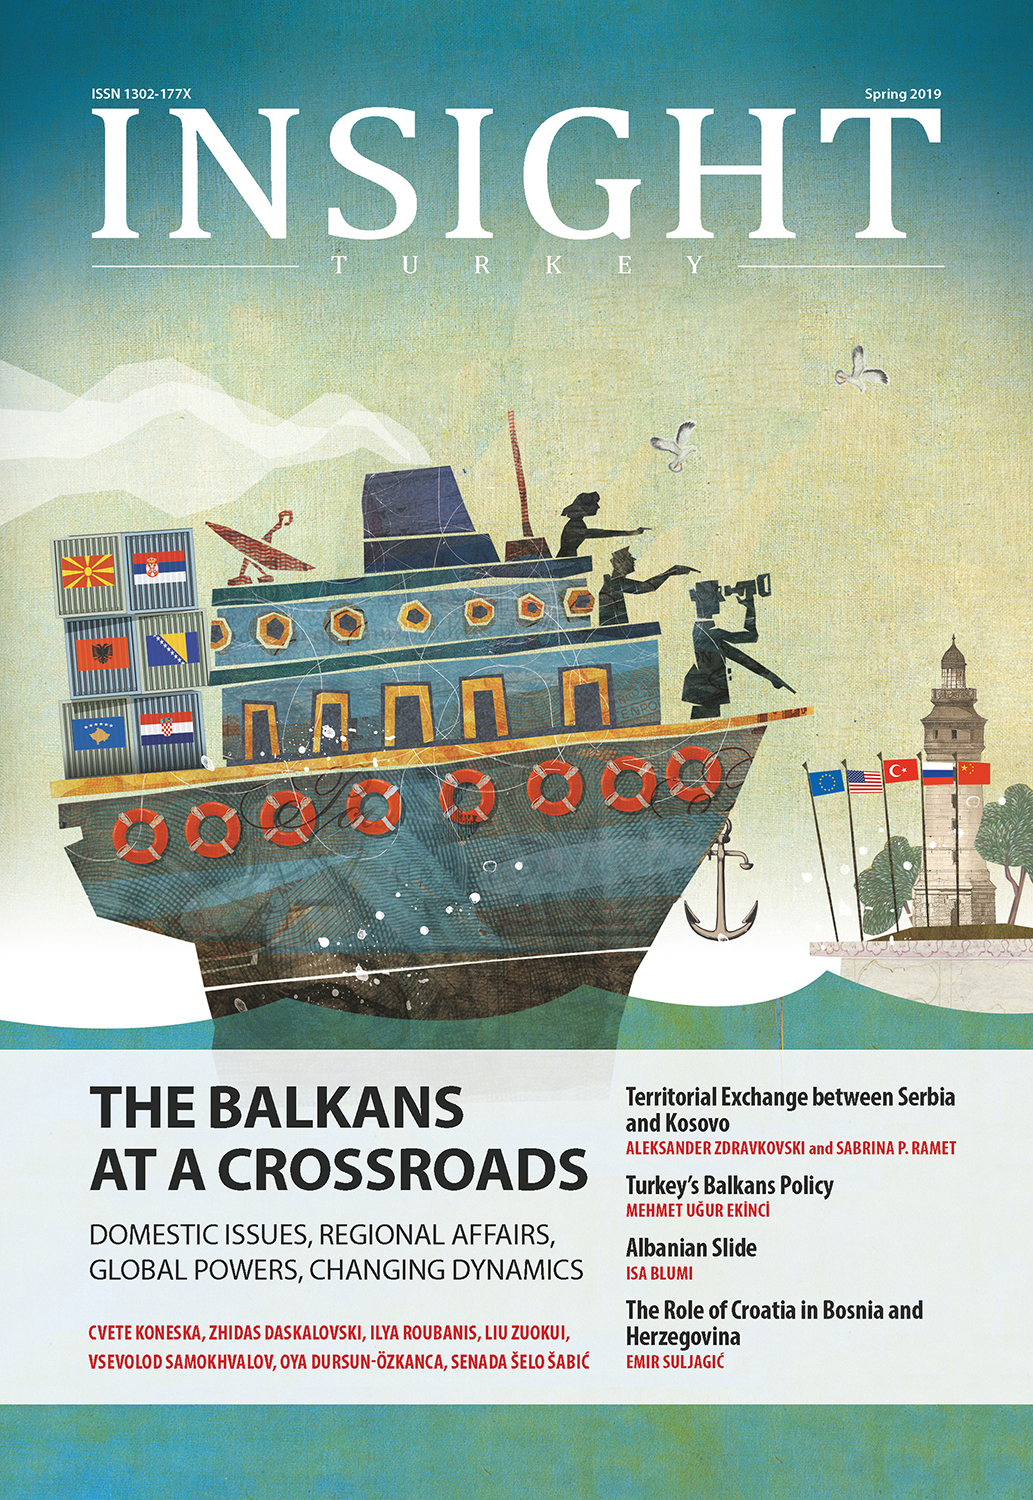 The Balkans at a Crossroads Domestic Issues Regional Affairs Global